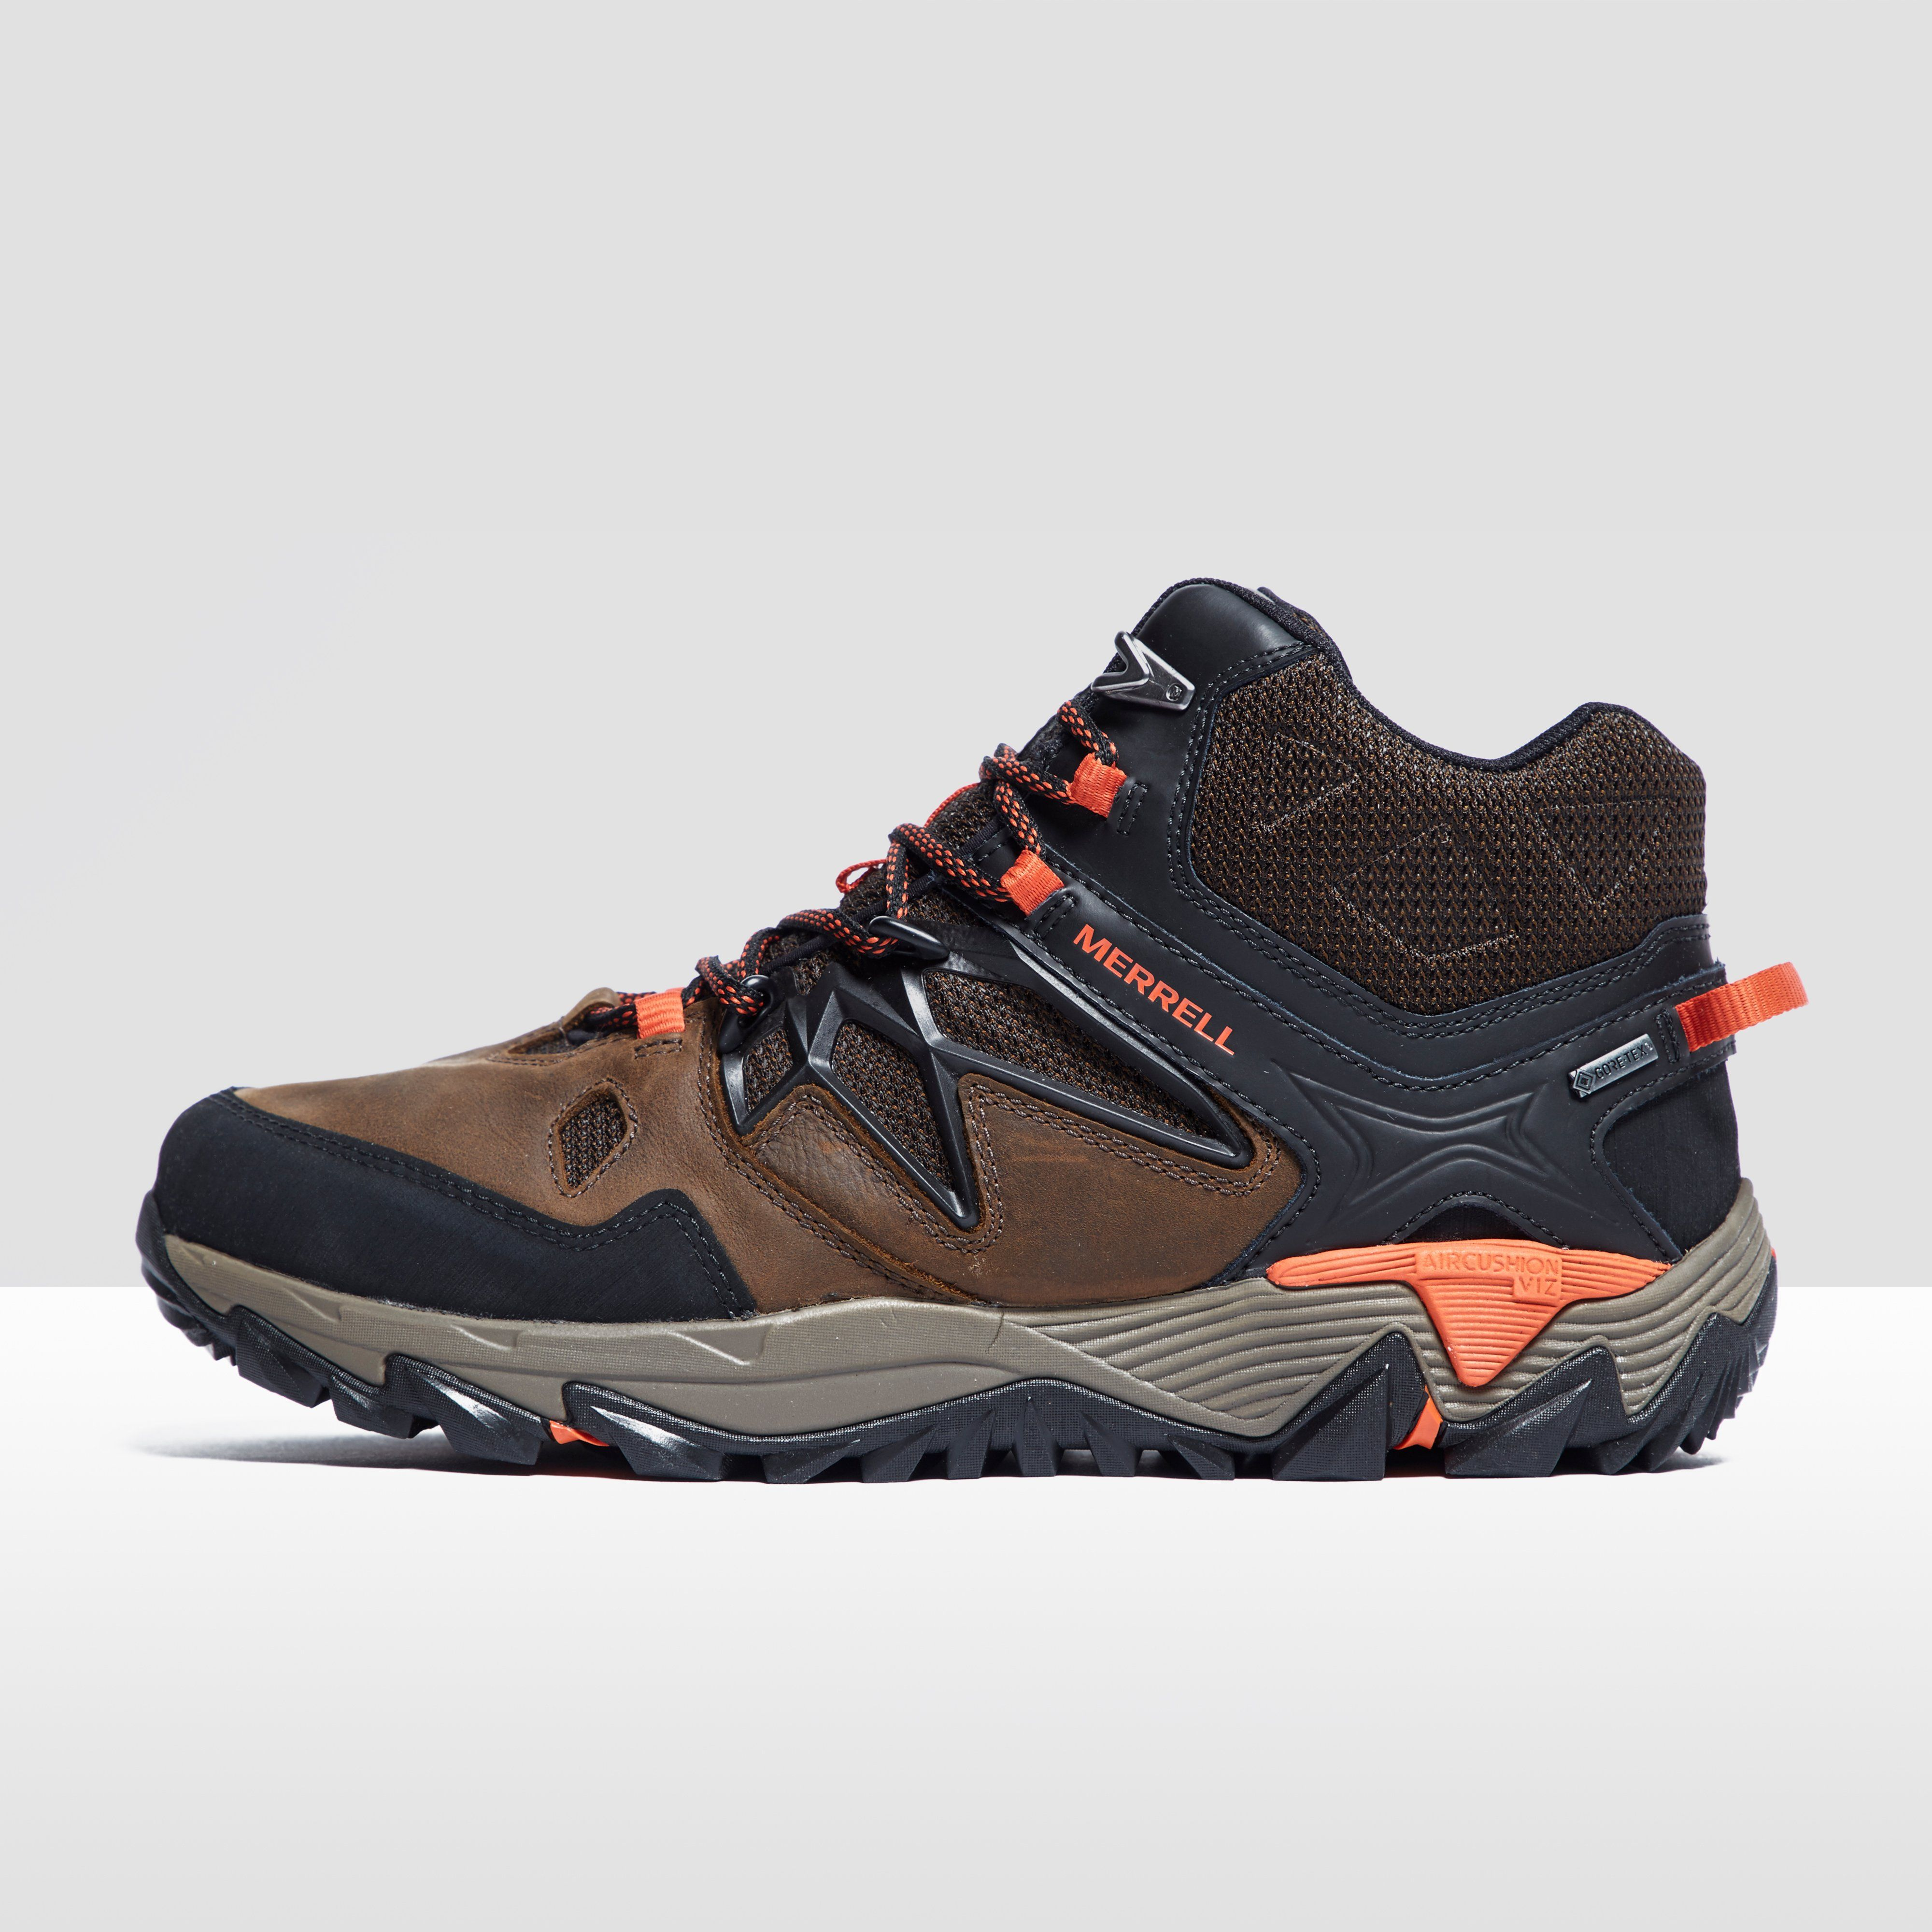 Merrell All Out Blaze 2 GTX Hiking Sneakers